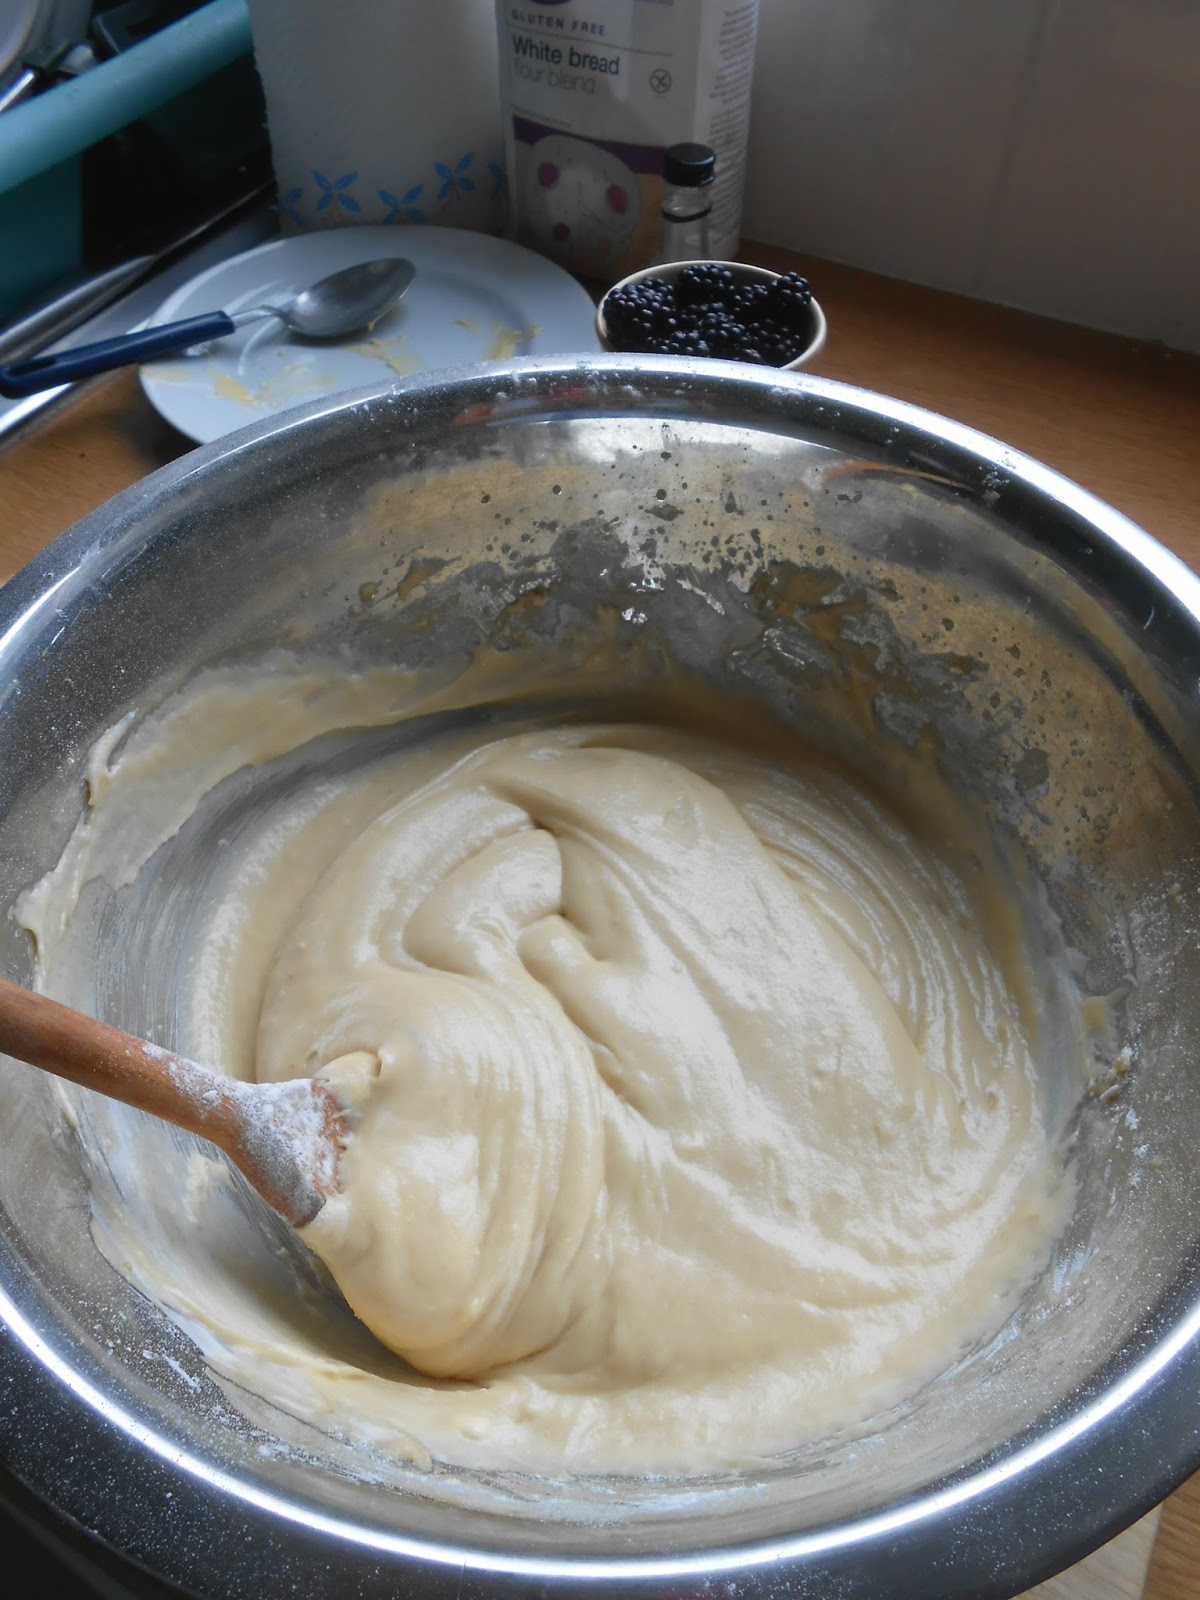 Cake Mix In Bowl